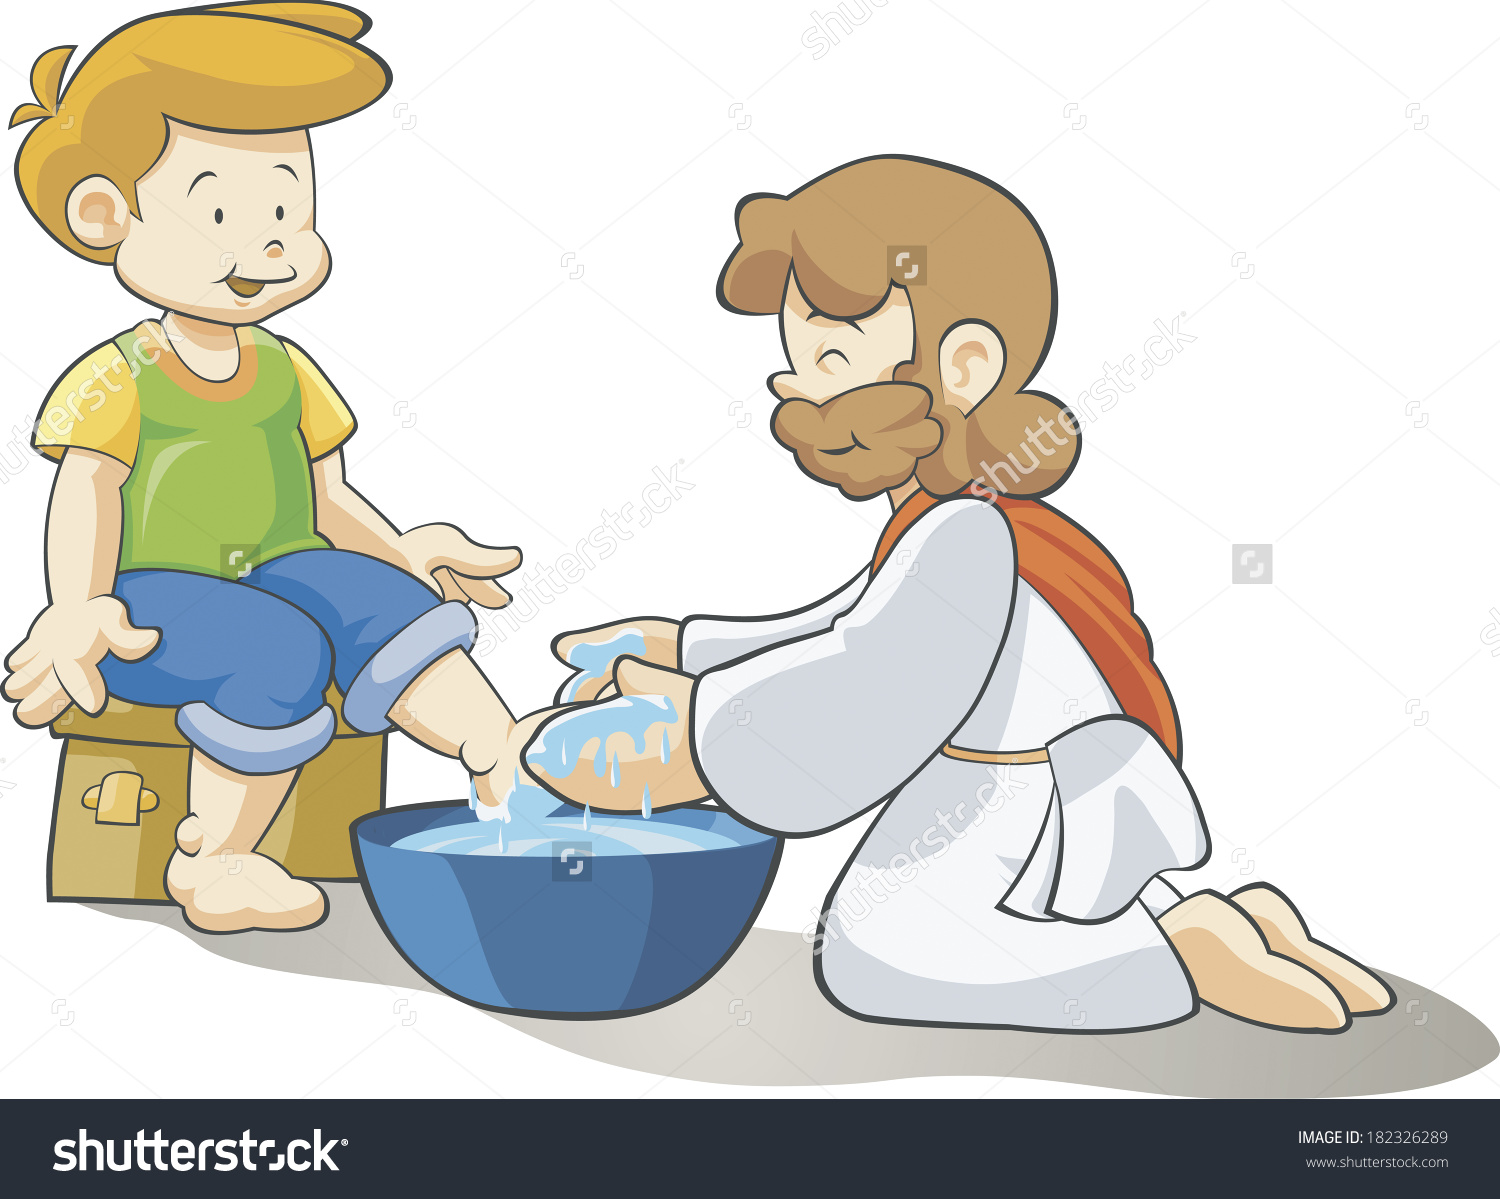 Jesus washing feet clipart.